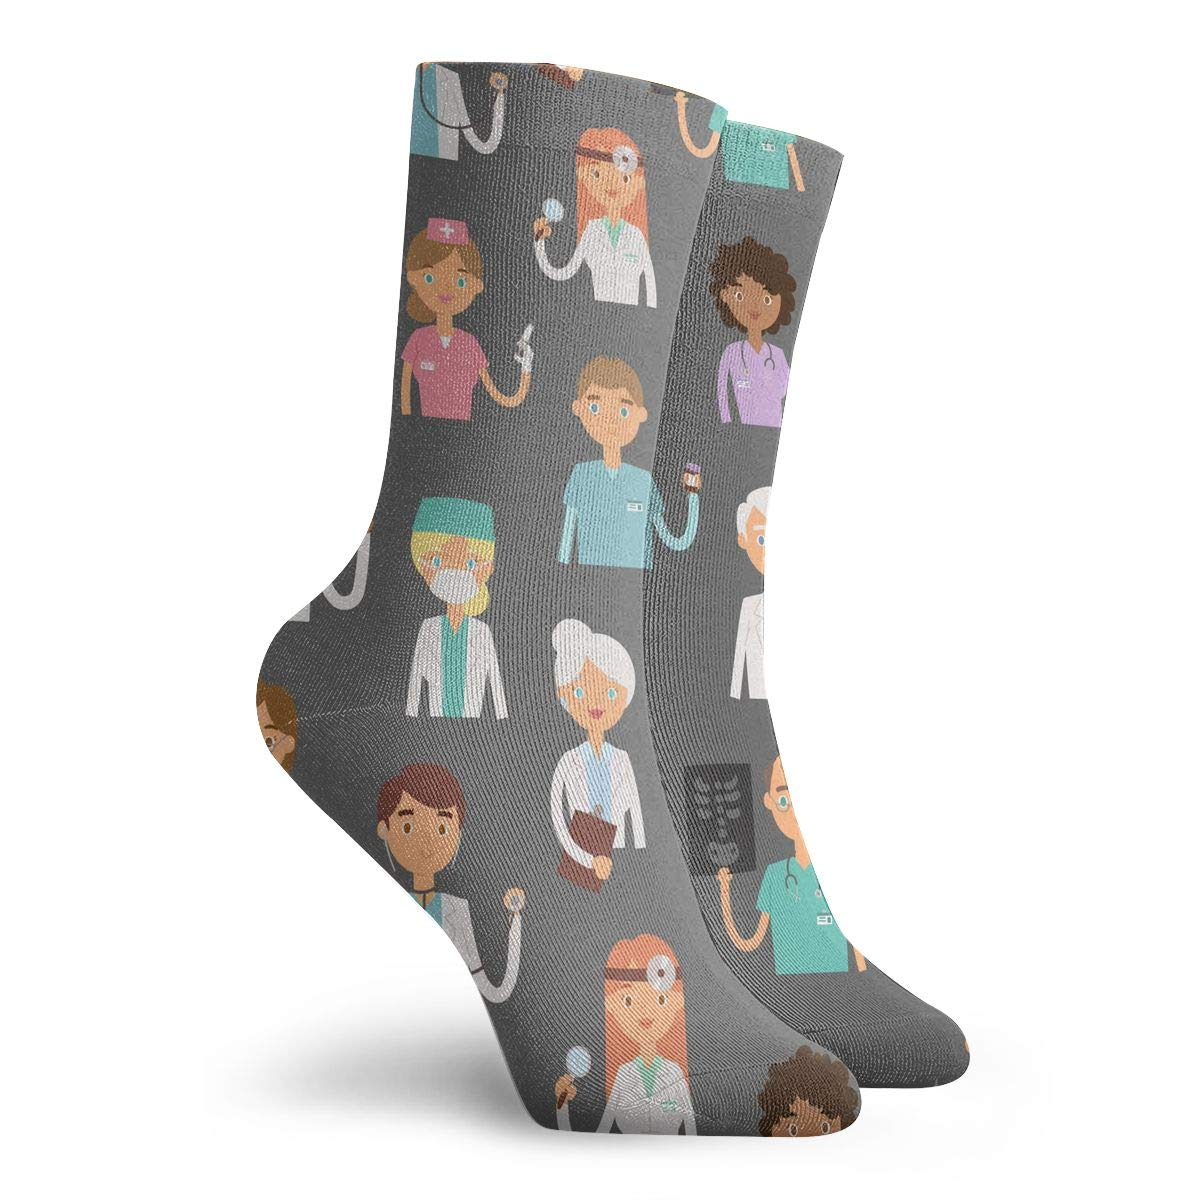 Women Men Doctors Profession Charactsers Pattern Cushion Crew Socks